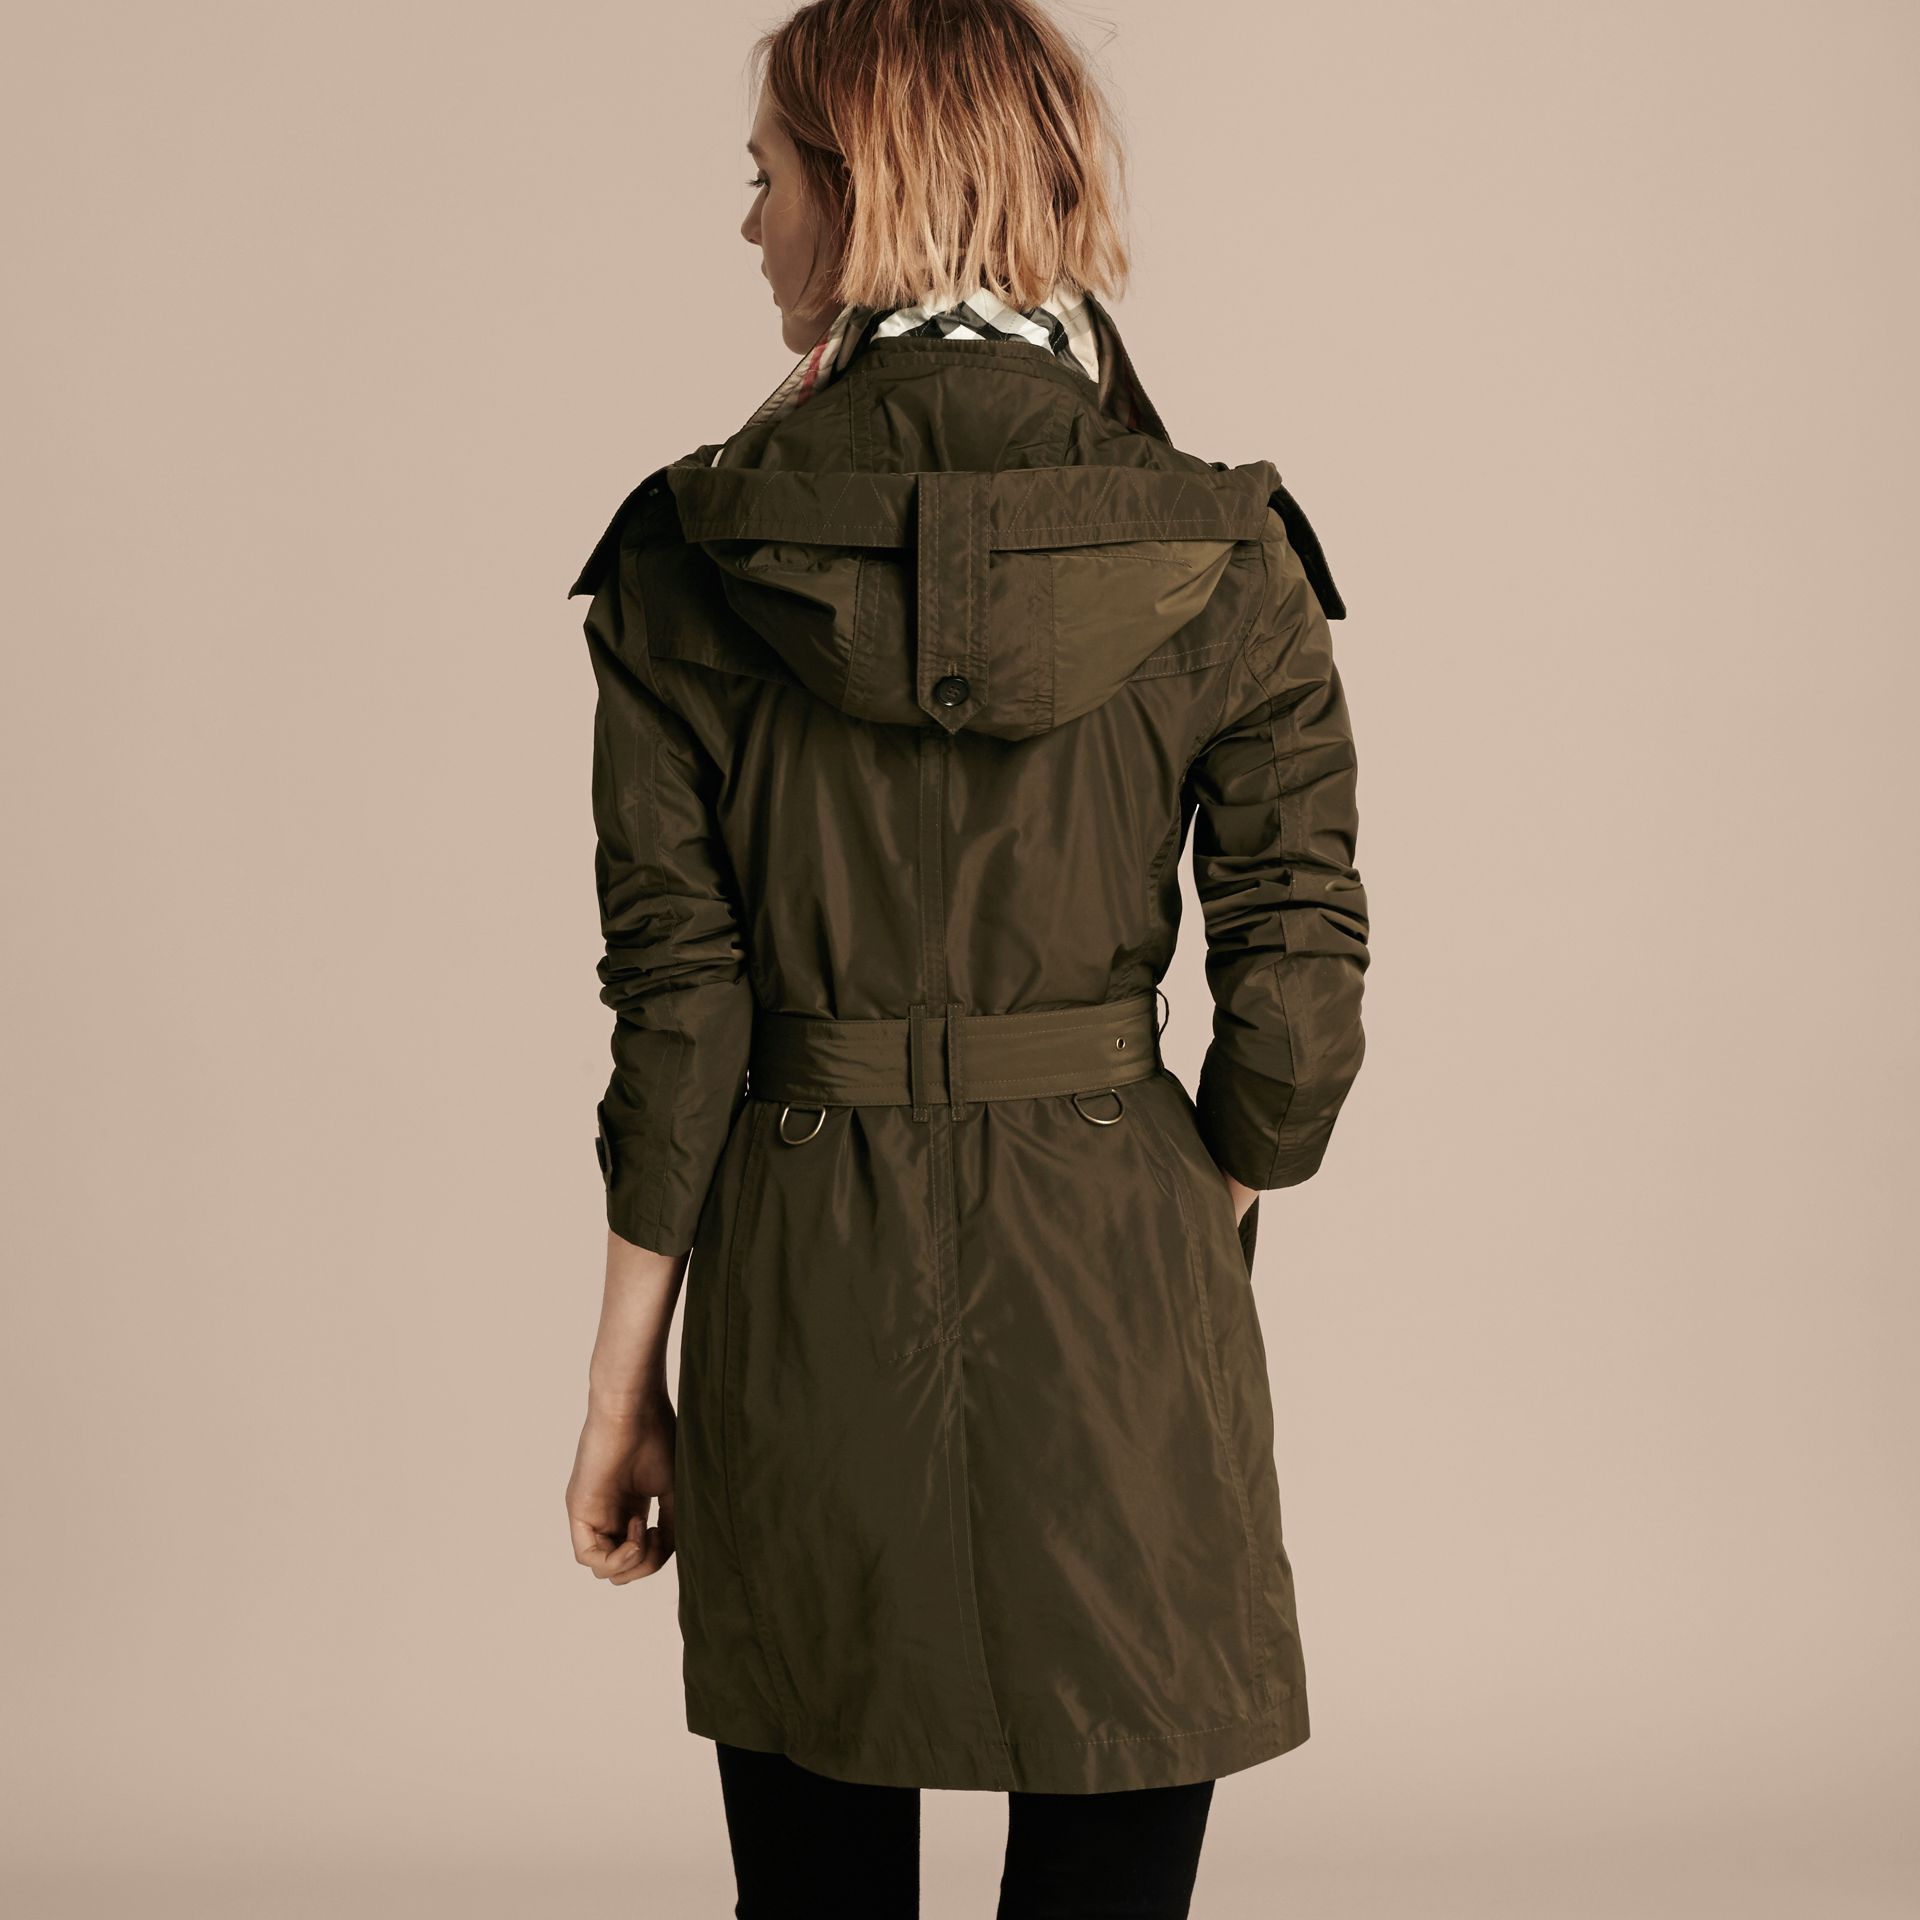 Taffeta Trench Coat with Detachable Hood in Dark Olive - Women | Burberry Canada - gallery image 3